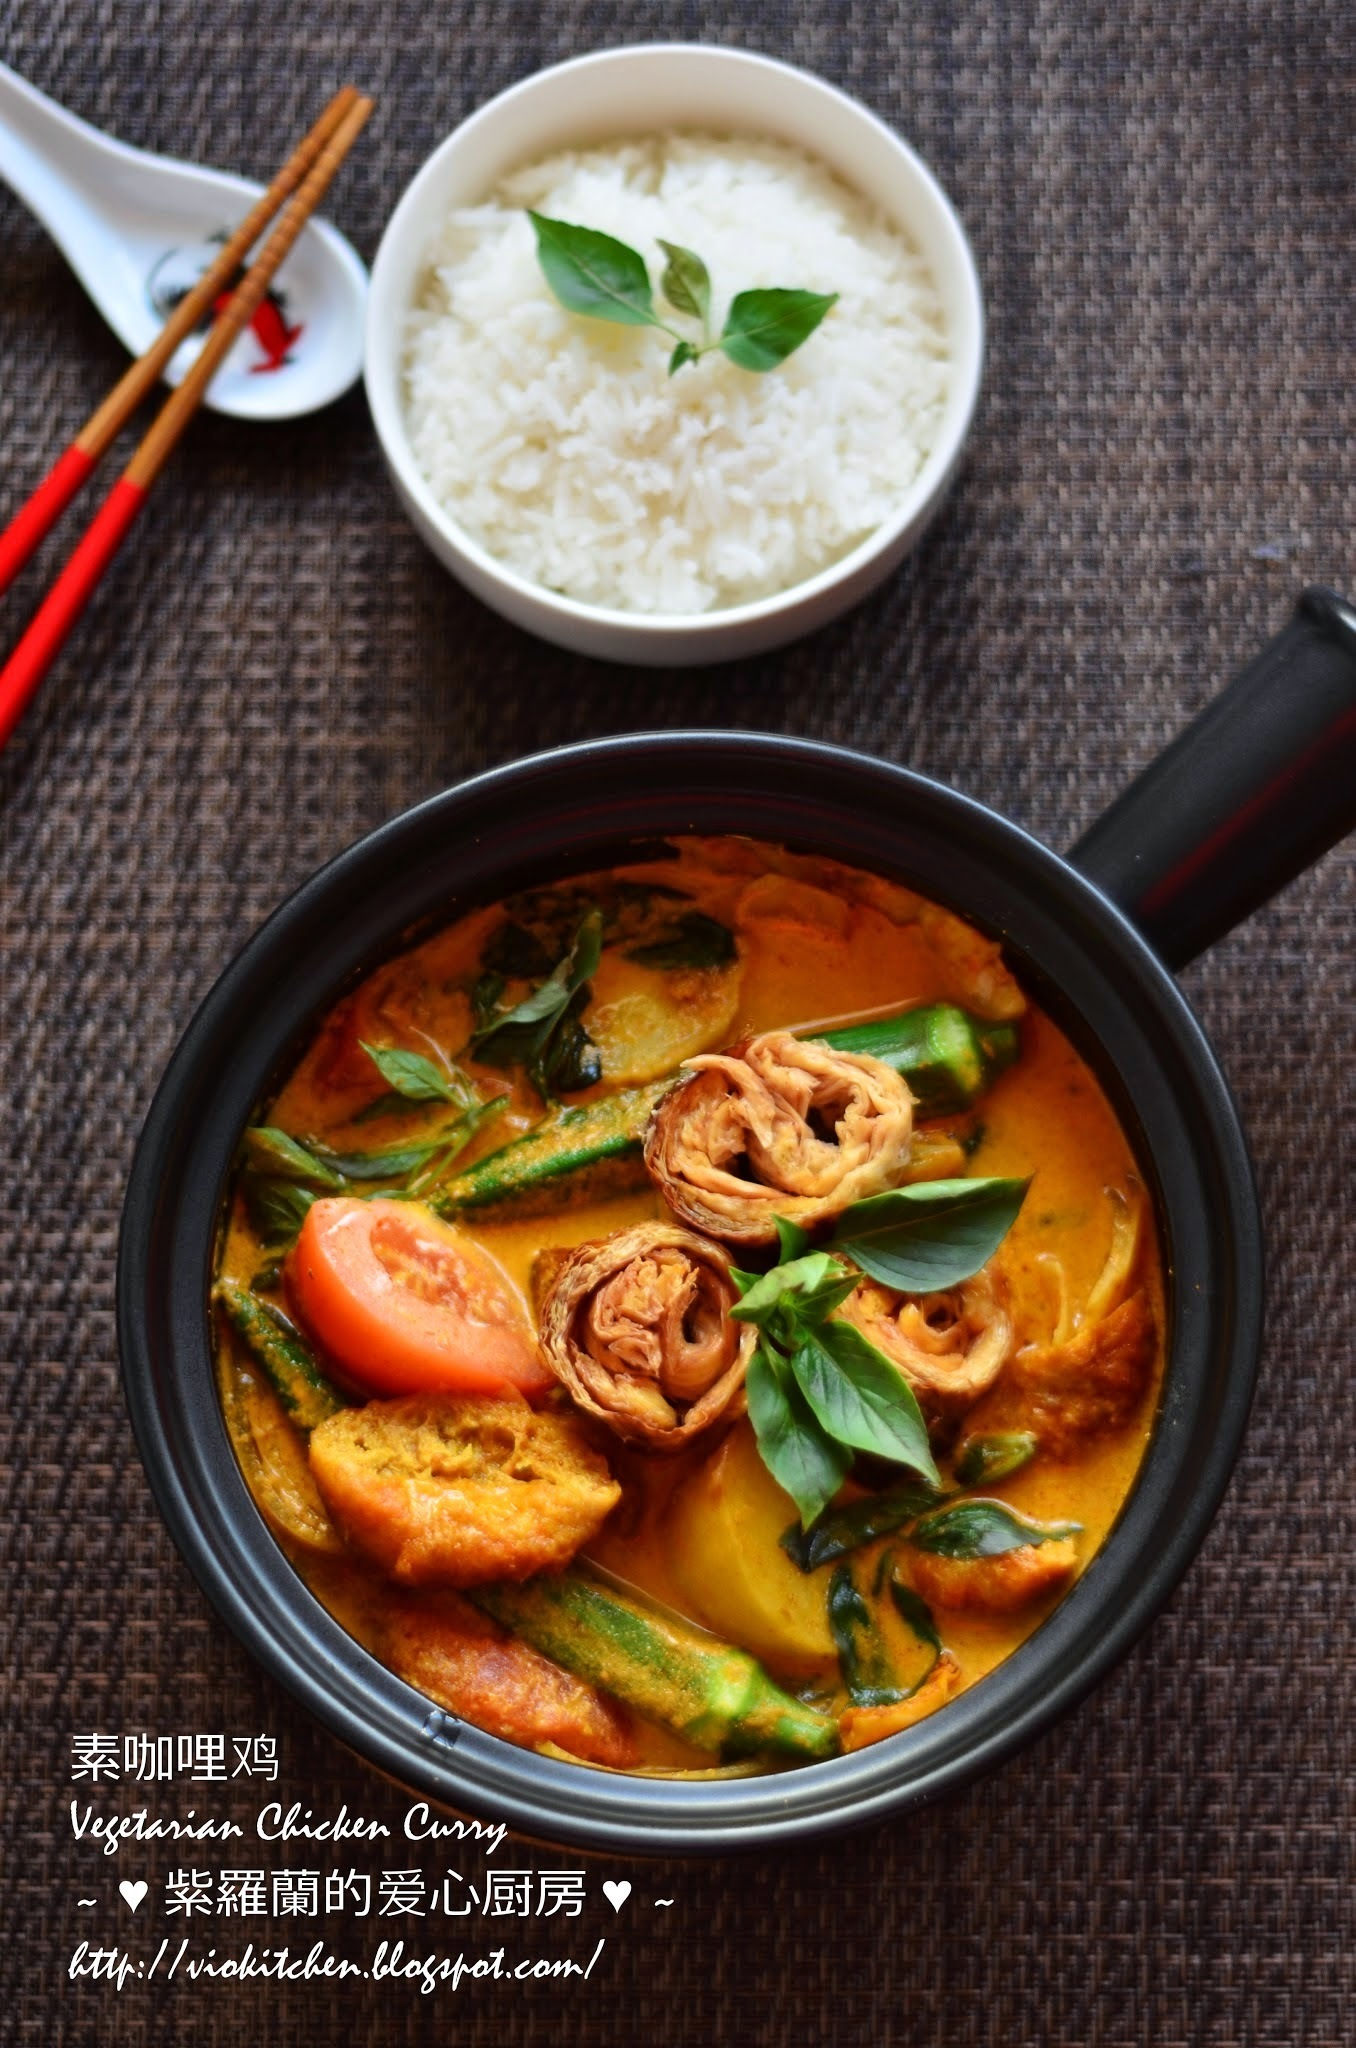 素咖哩鸡 Vegetarian Chicken Curry